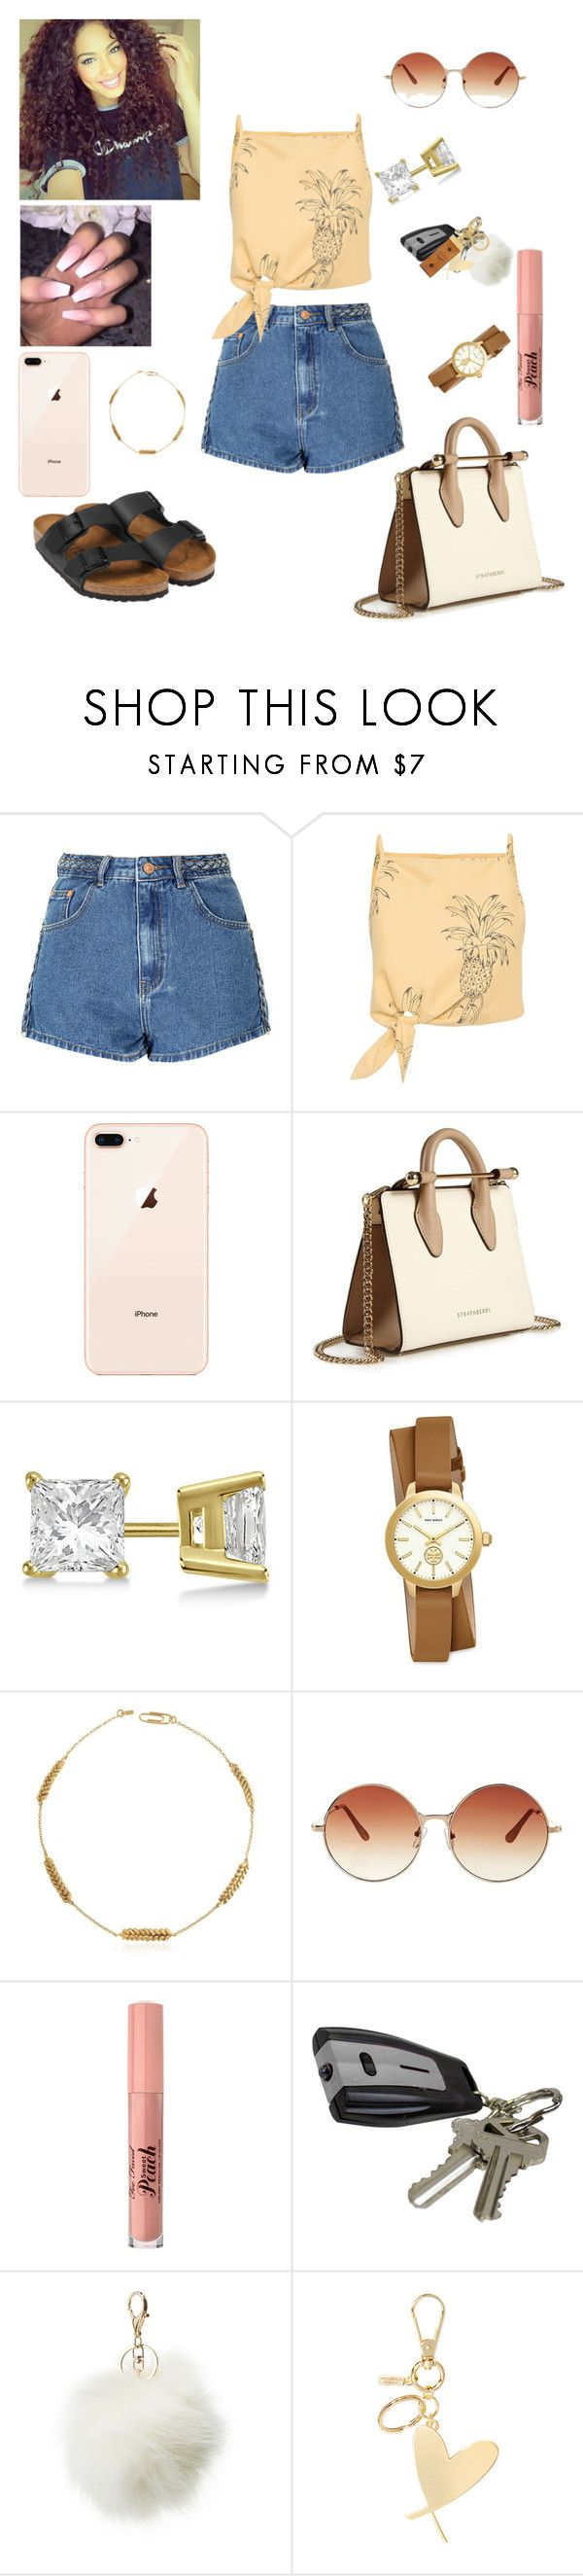 """#Mall Run 😍💸"" by prxncessm ❤ liked on Polyvore featuring Glamorous, Birkenstock, Strathberry, Allurez, Tory Burch, Aurélie Bidermann, Topshop, Too Faced Cosmetics, Charlotte Russe and Victoria's Secret"